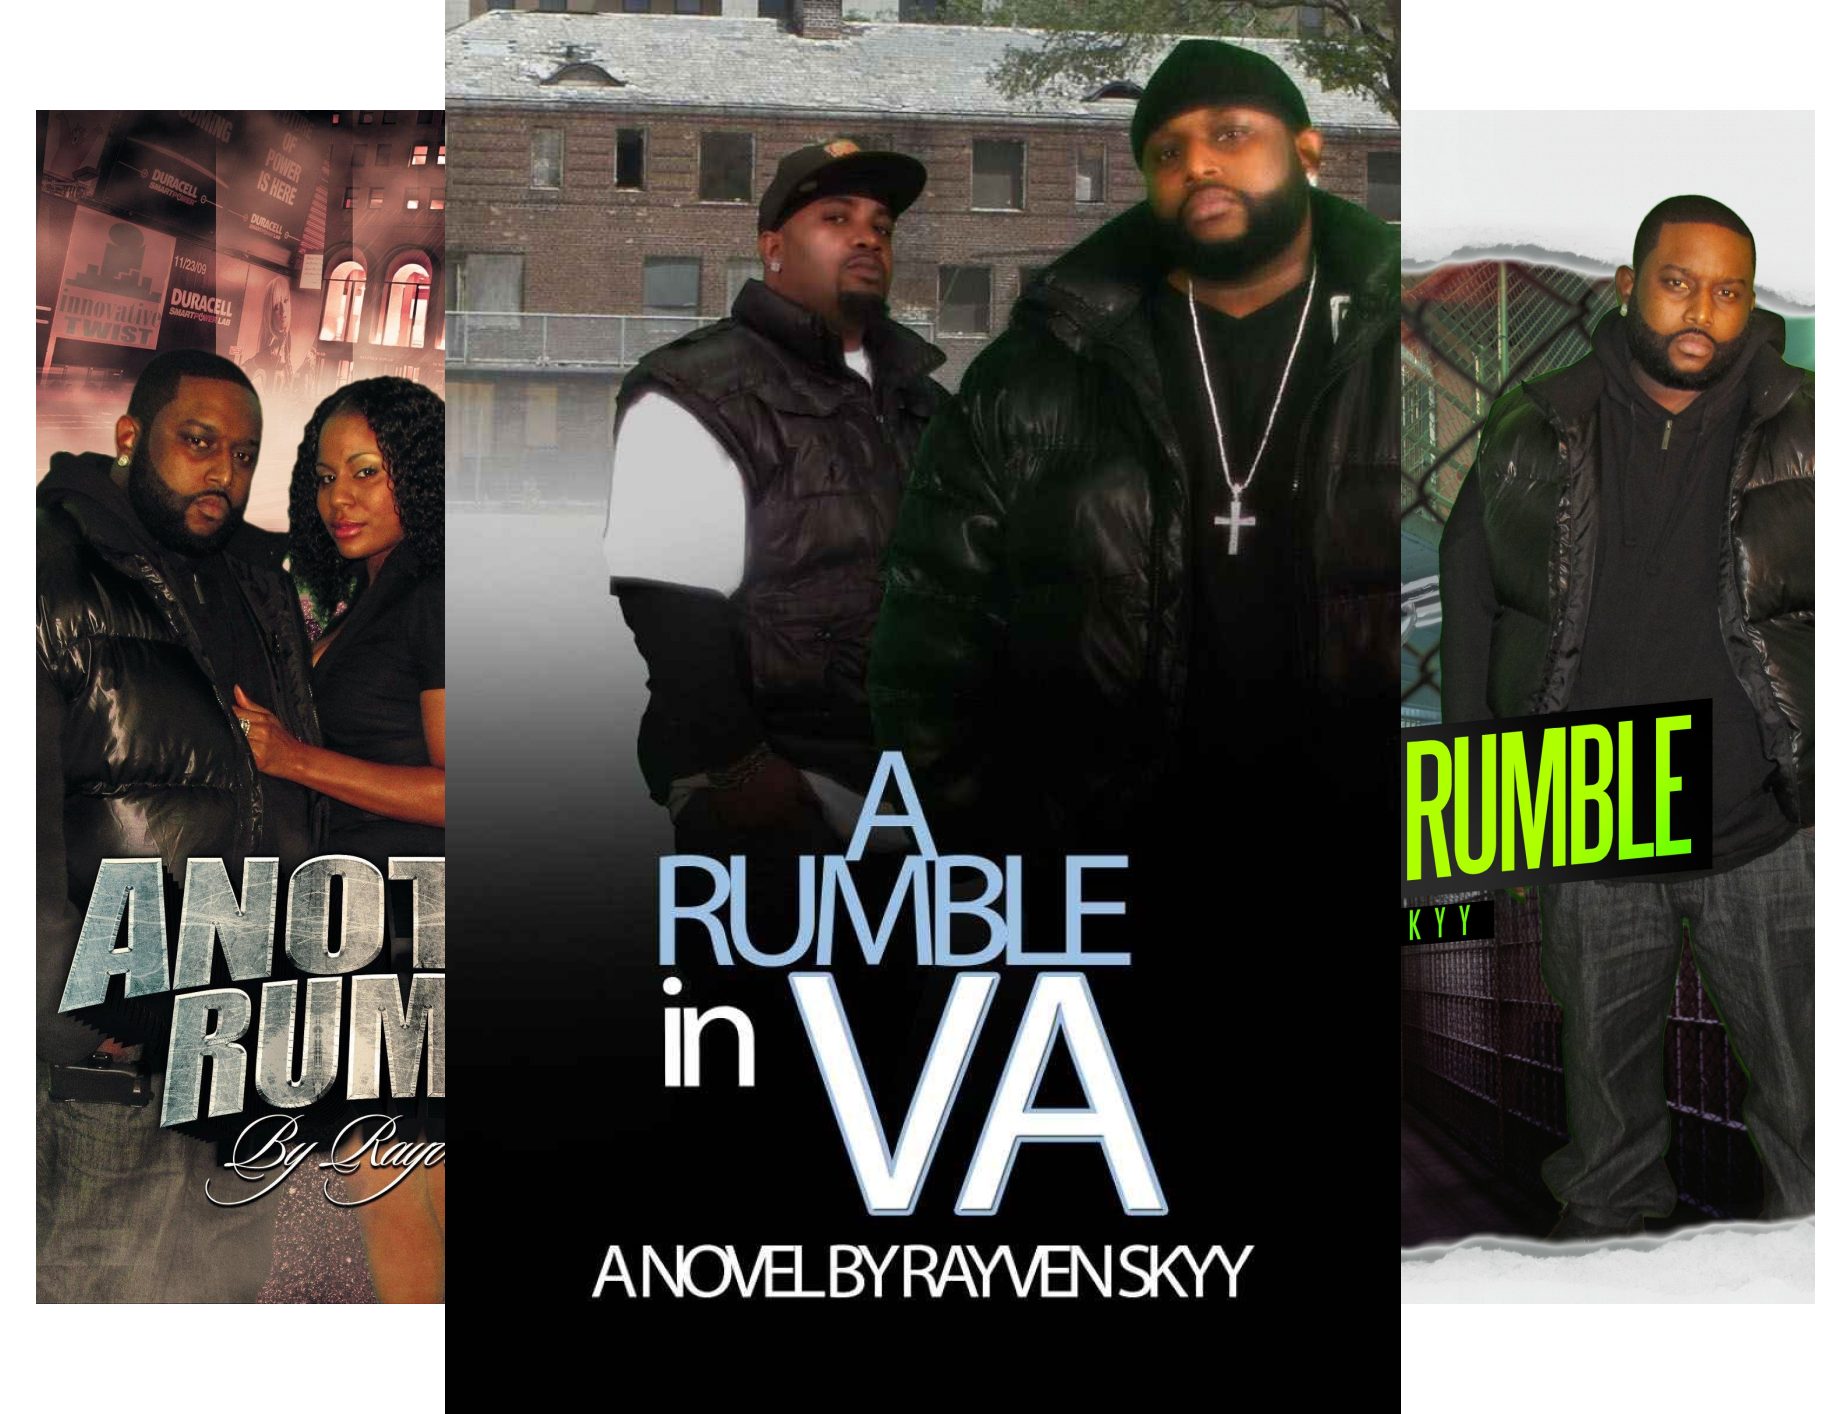 Books : The Rumble Series (5 Book Series)